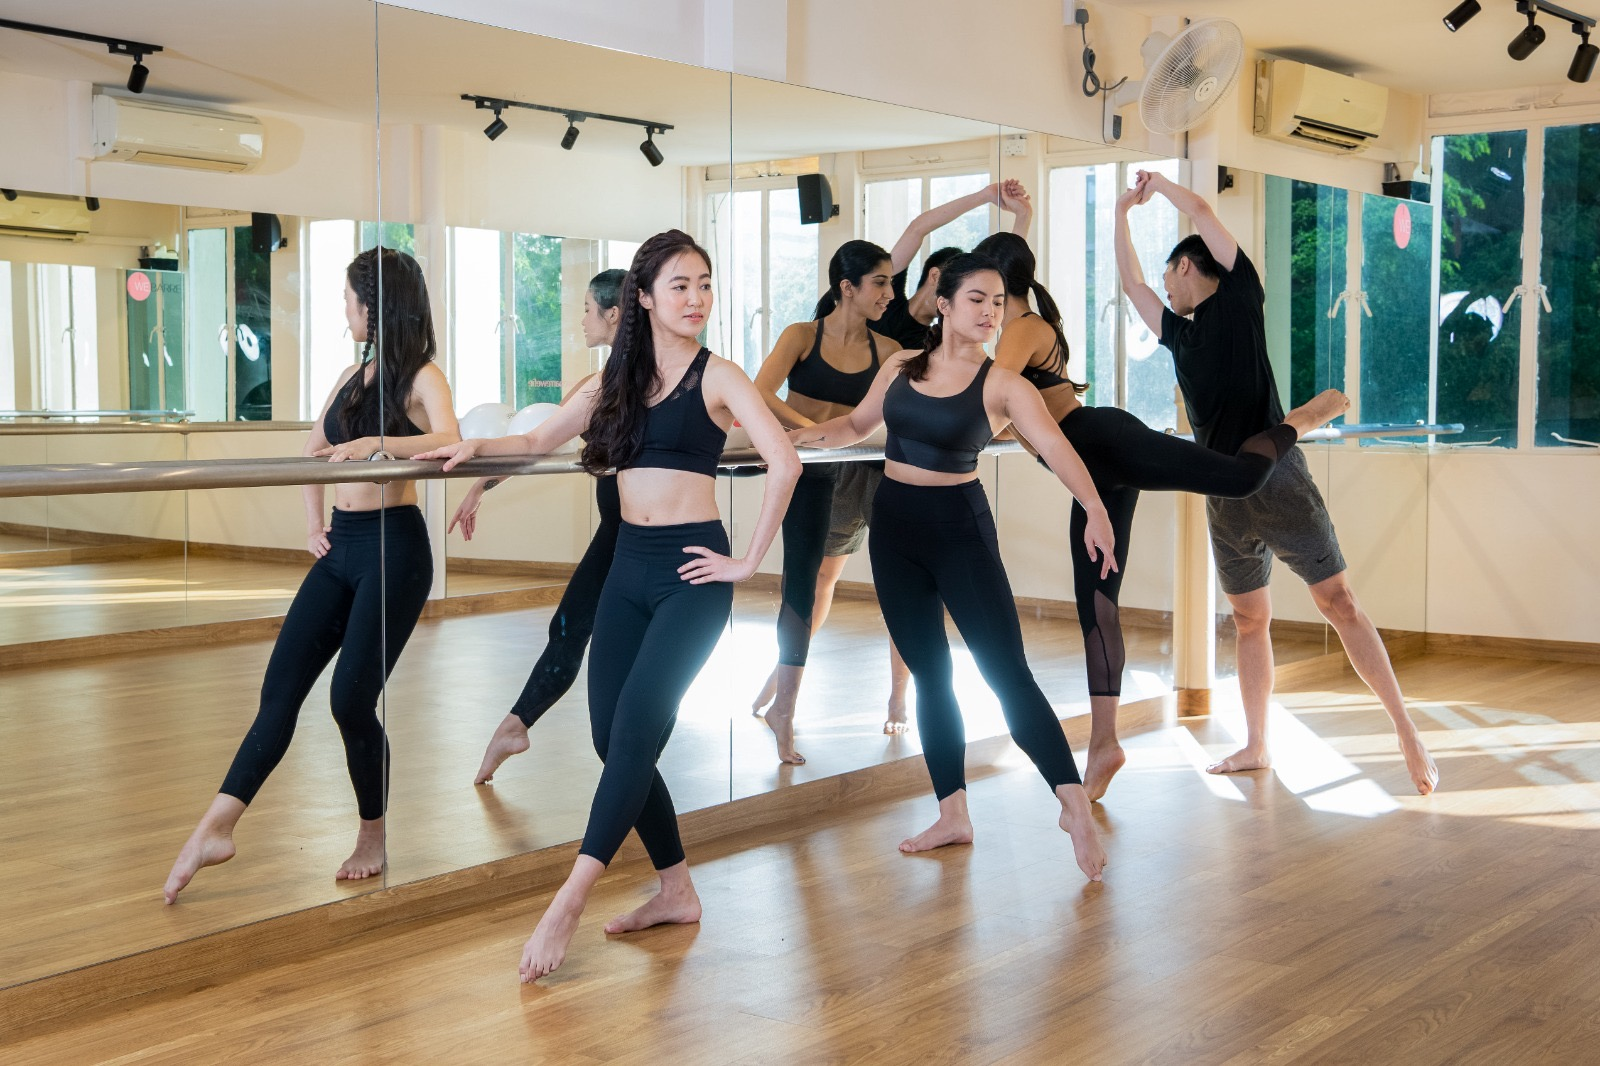 How to Stay Committed to Your Workouts, According to These Barre Super-Achievers